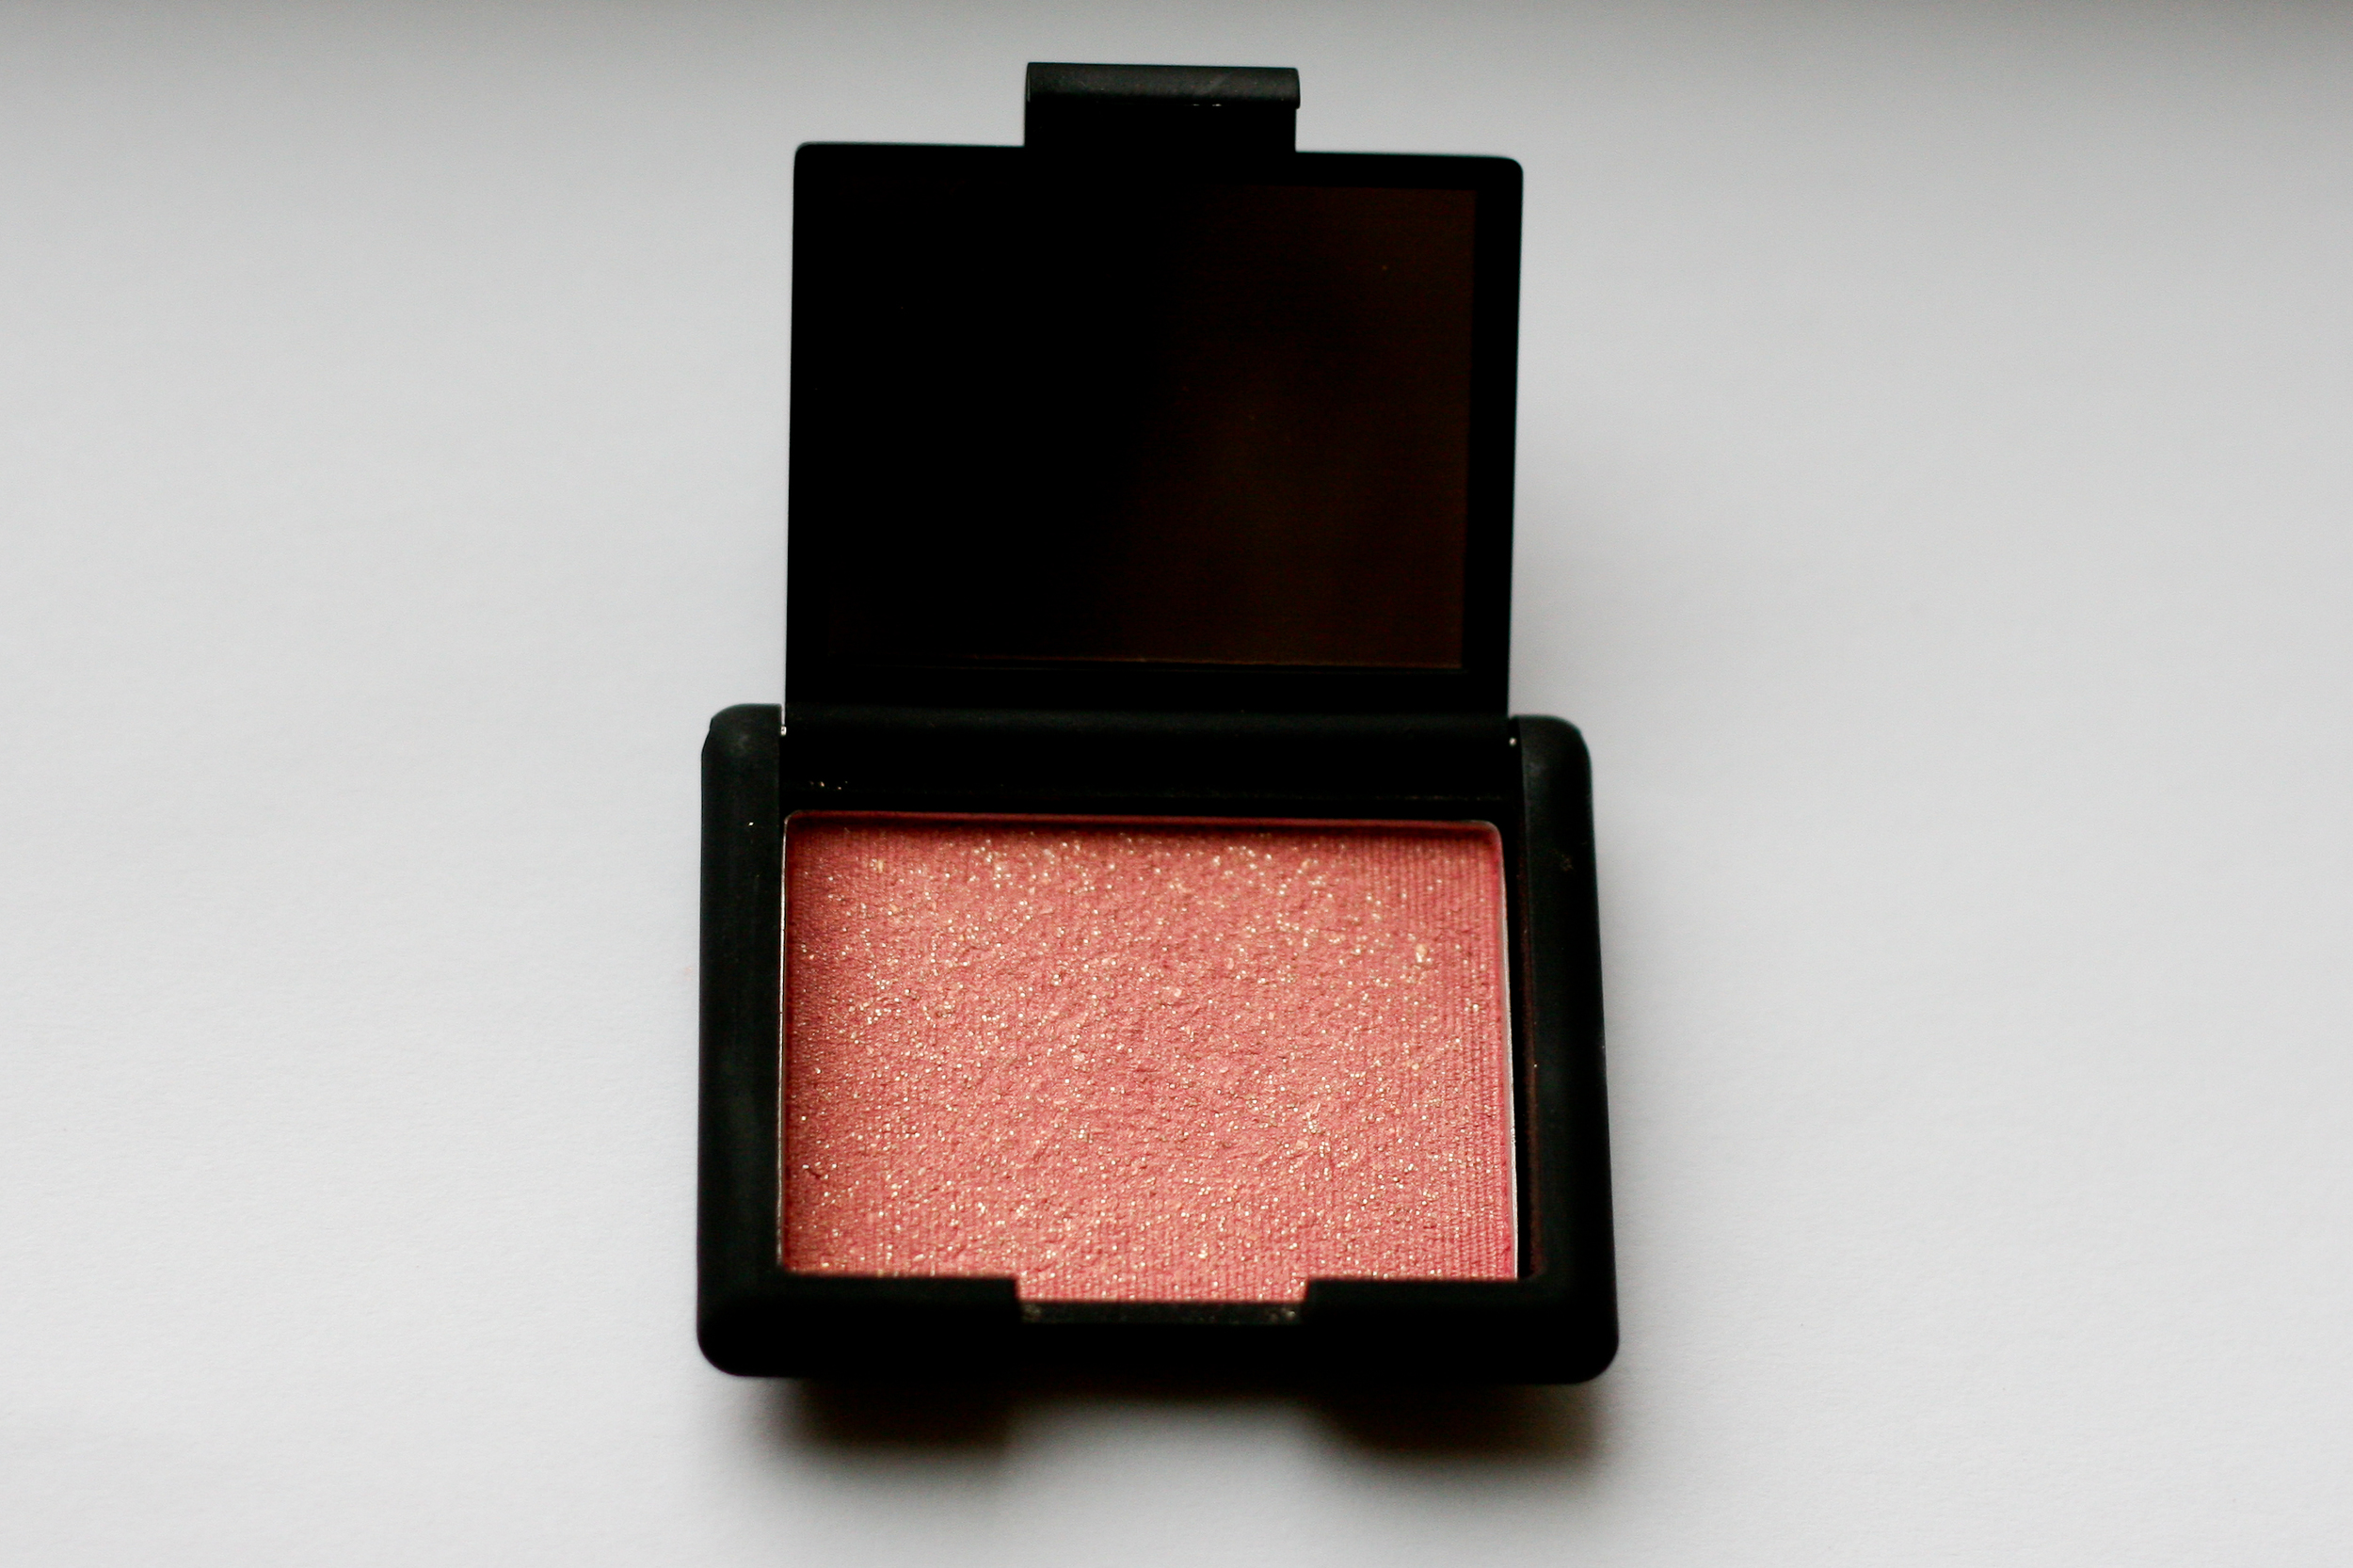 NARS Super Orgasm blush. It's hard to see in this photo, but the compact does include a mirror.